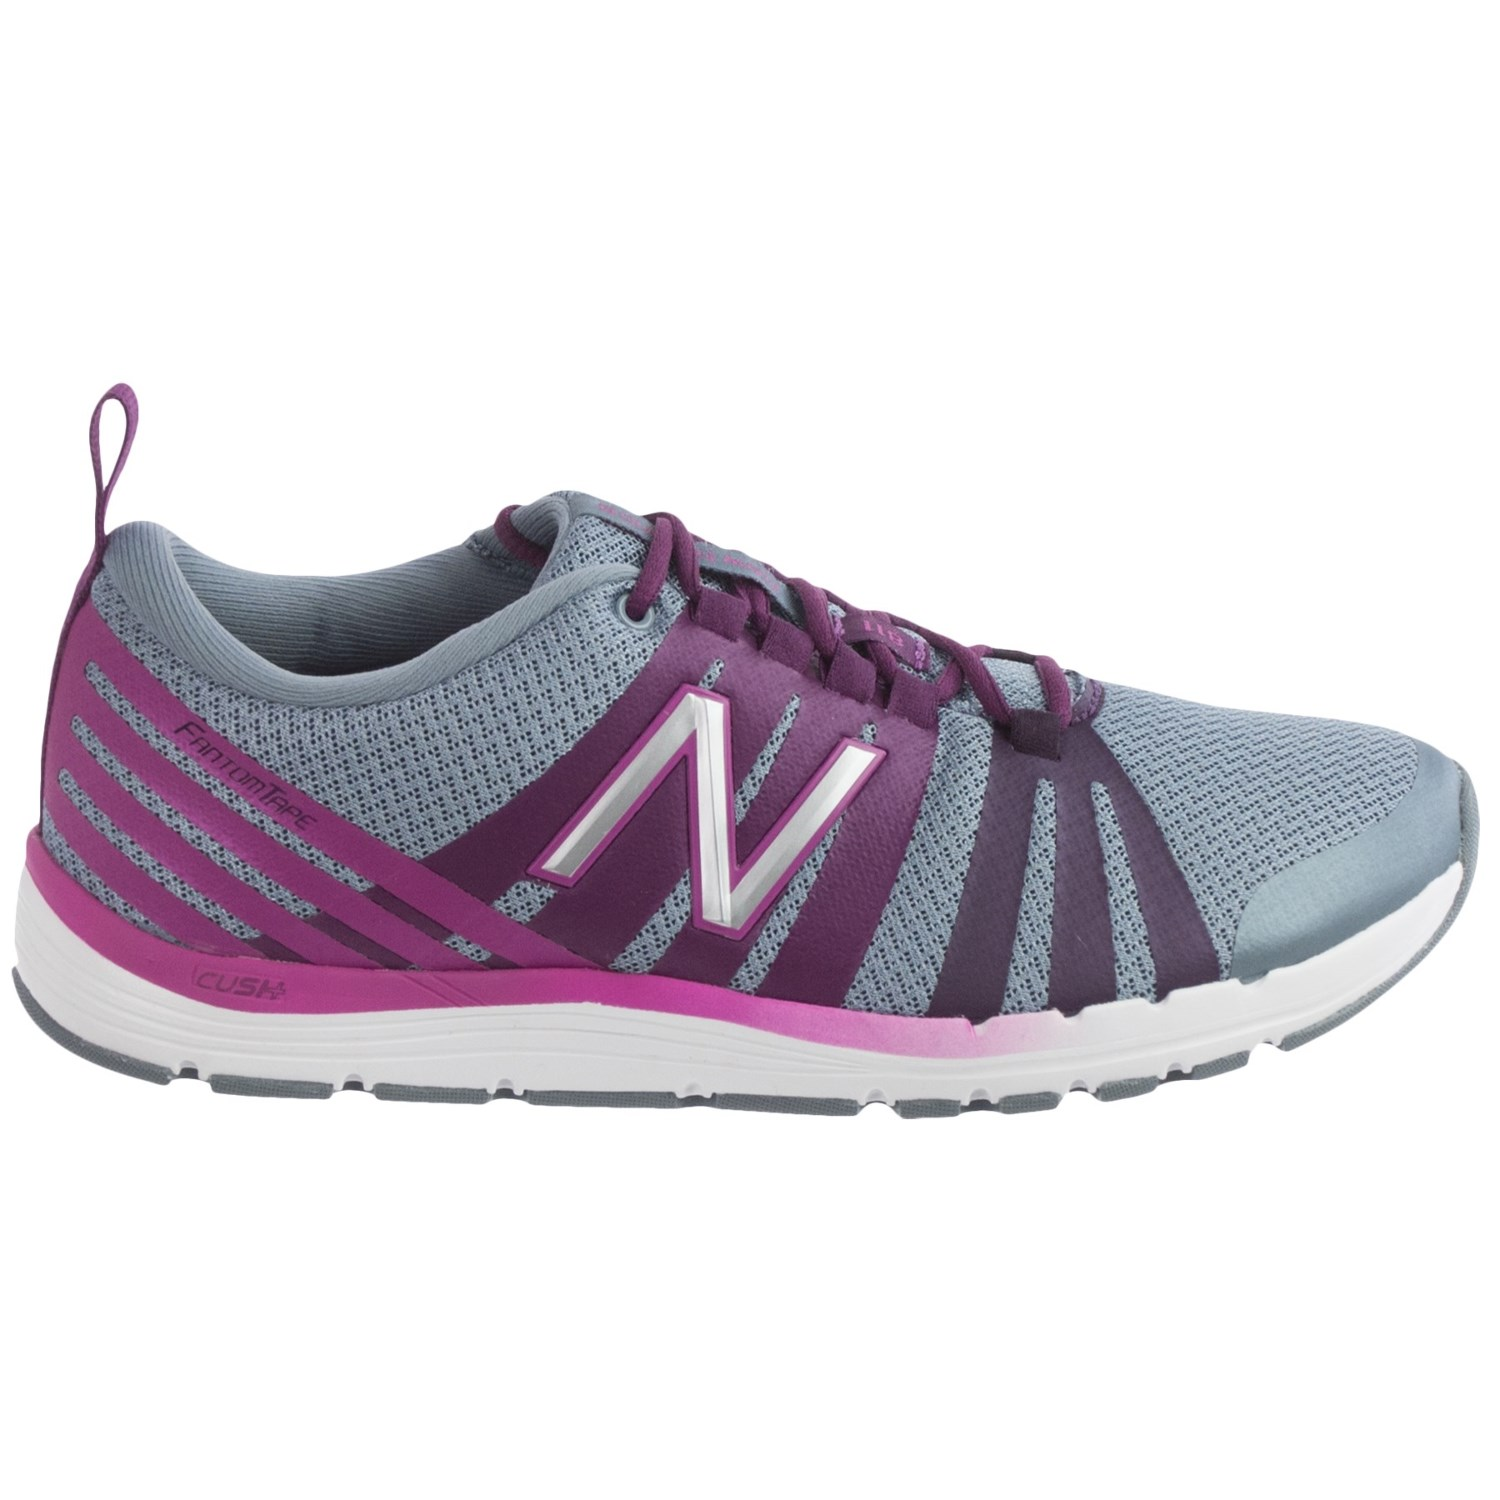 new balance 811 shoes